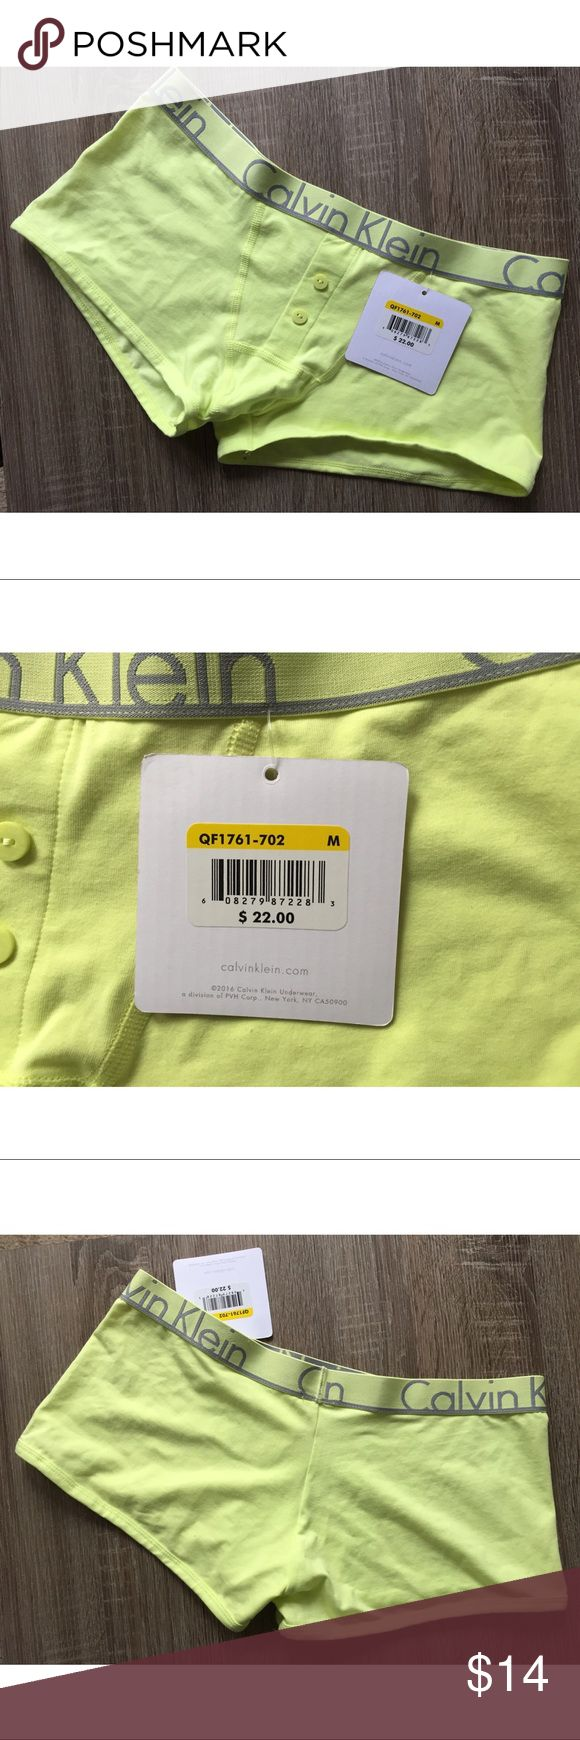 CALVIN KLEIN BOY SHORTS BRAND NEW MEDIUM 🔰ITEM: Calvin Klein Boyshorts  🔰CONDITION: Brand New with Tags 🔰COLOR: NEON YELLOW 🔰SIZE: Medium   PRICE IS FIRM! No trades. No outside transactions. I ship same day if purchased by 2pm est. Bundle 2+ items for a discount! 😉 Calvin Klein Intimates & Sleepwear Panties